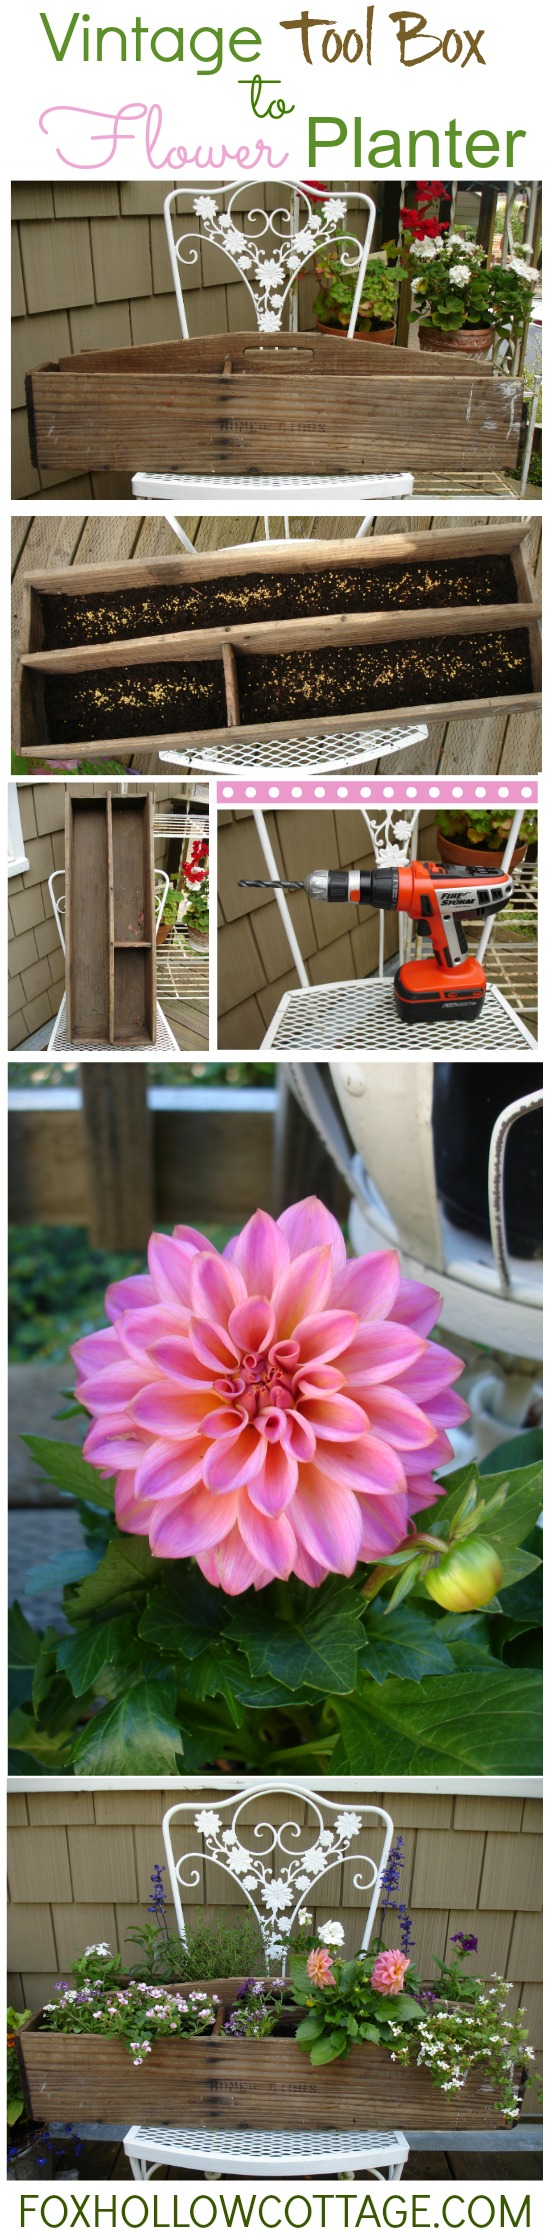 vintage tool box to flower planter diy how to